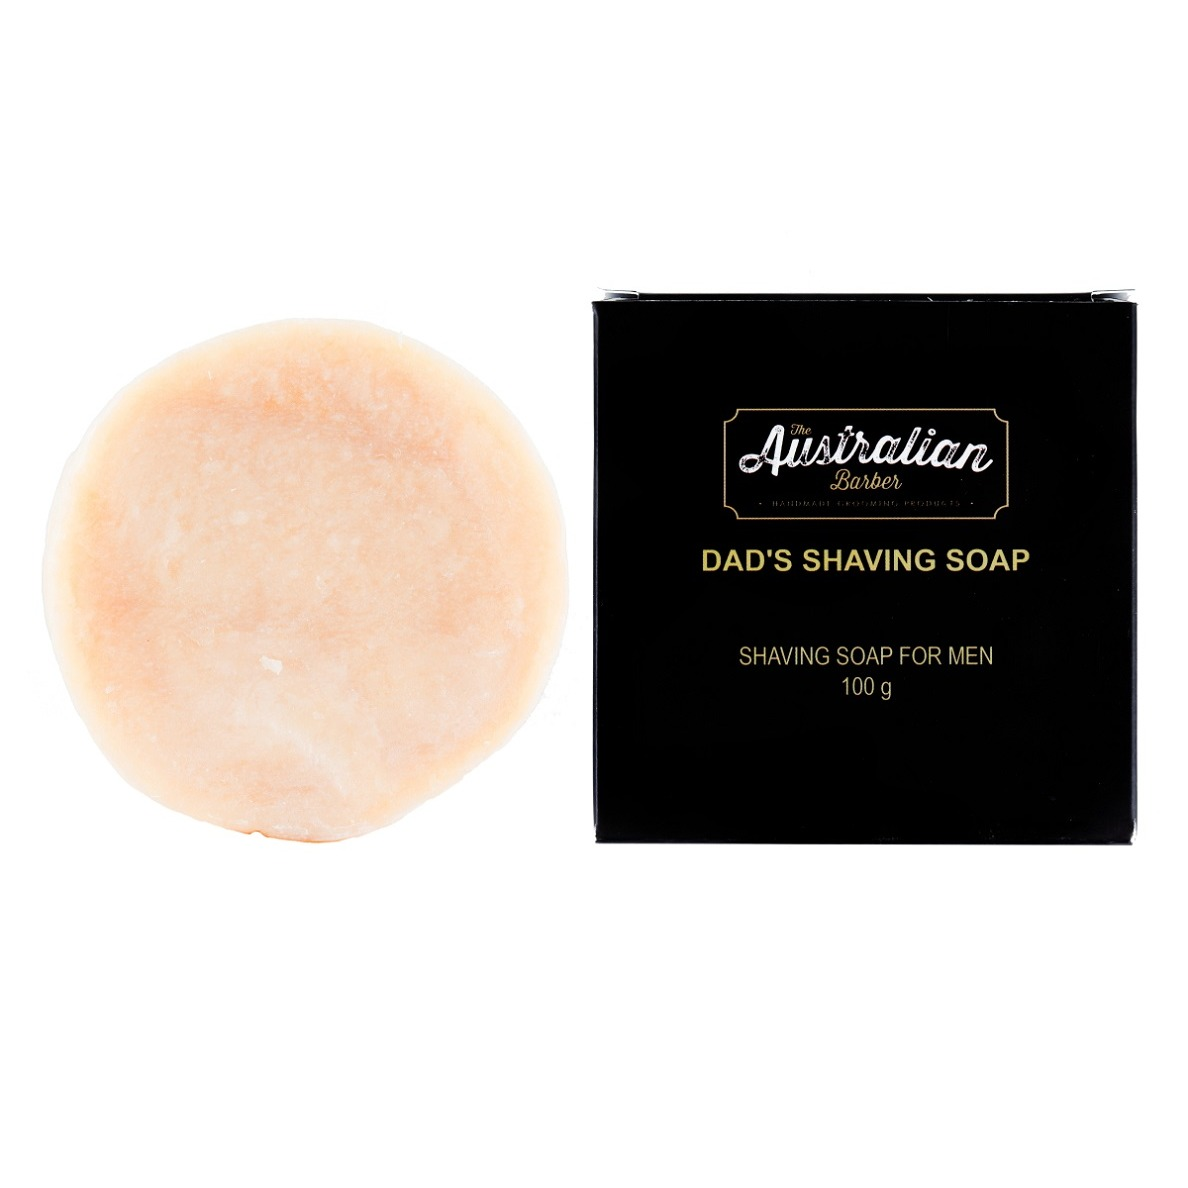 The Australian Barber Dad's Shaving Soap borotvaszappan